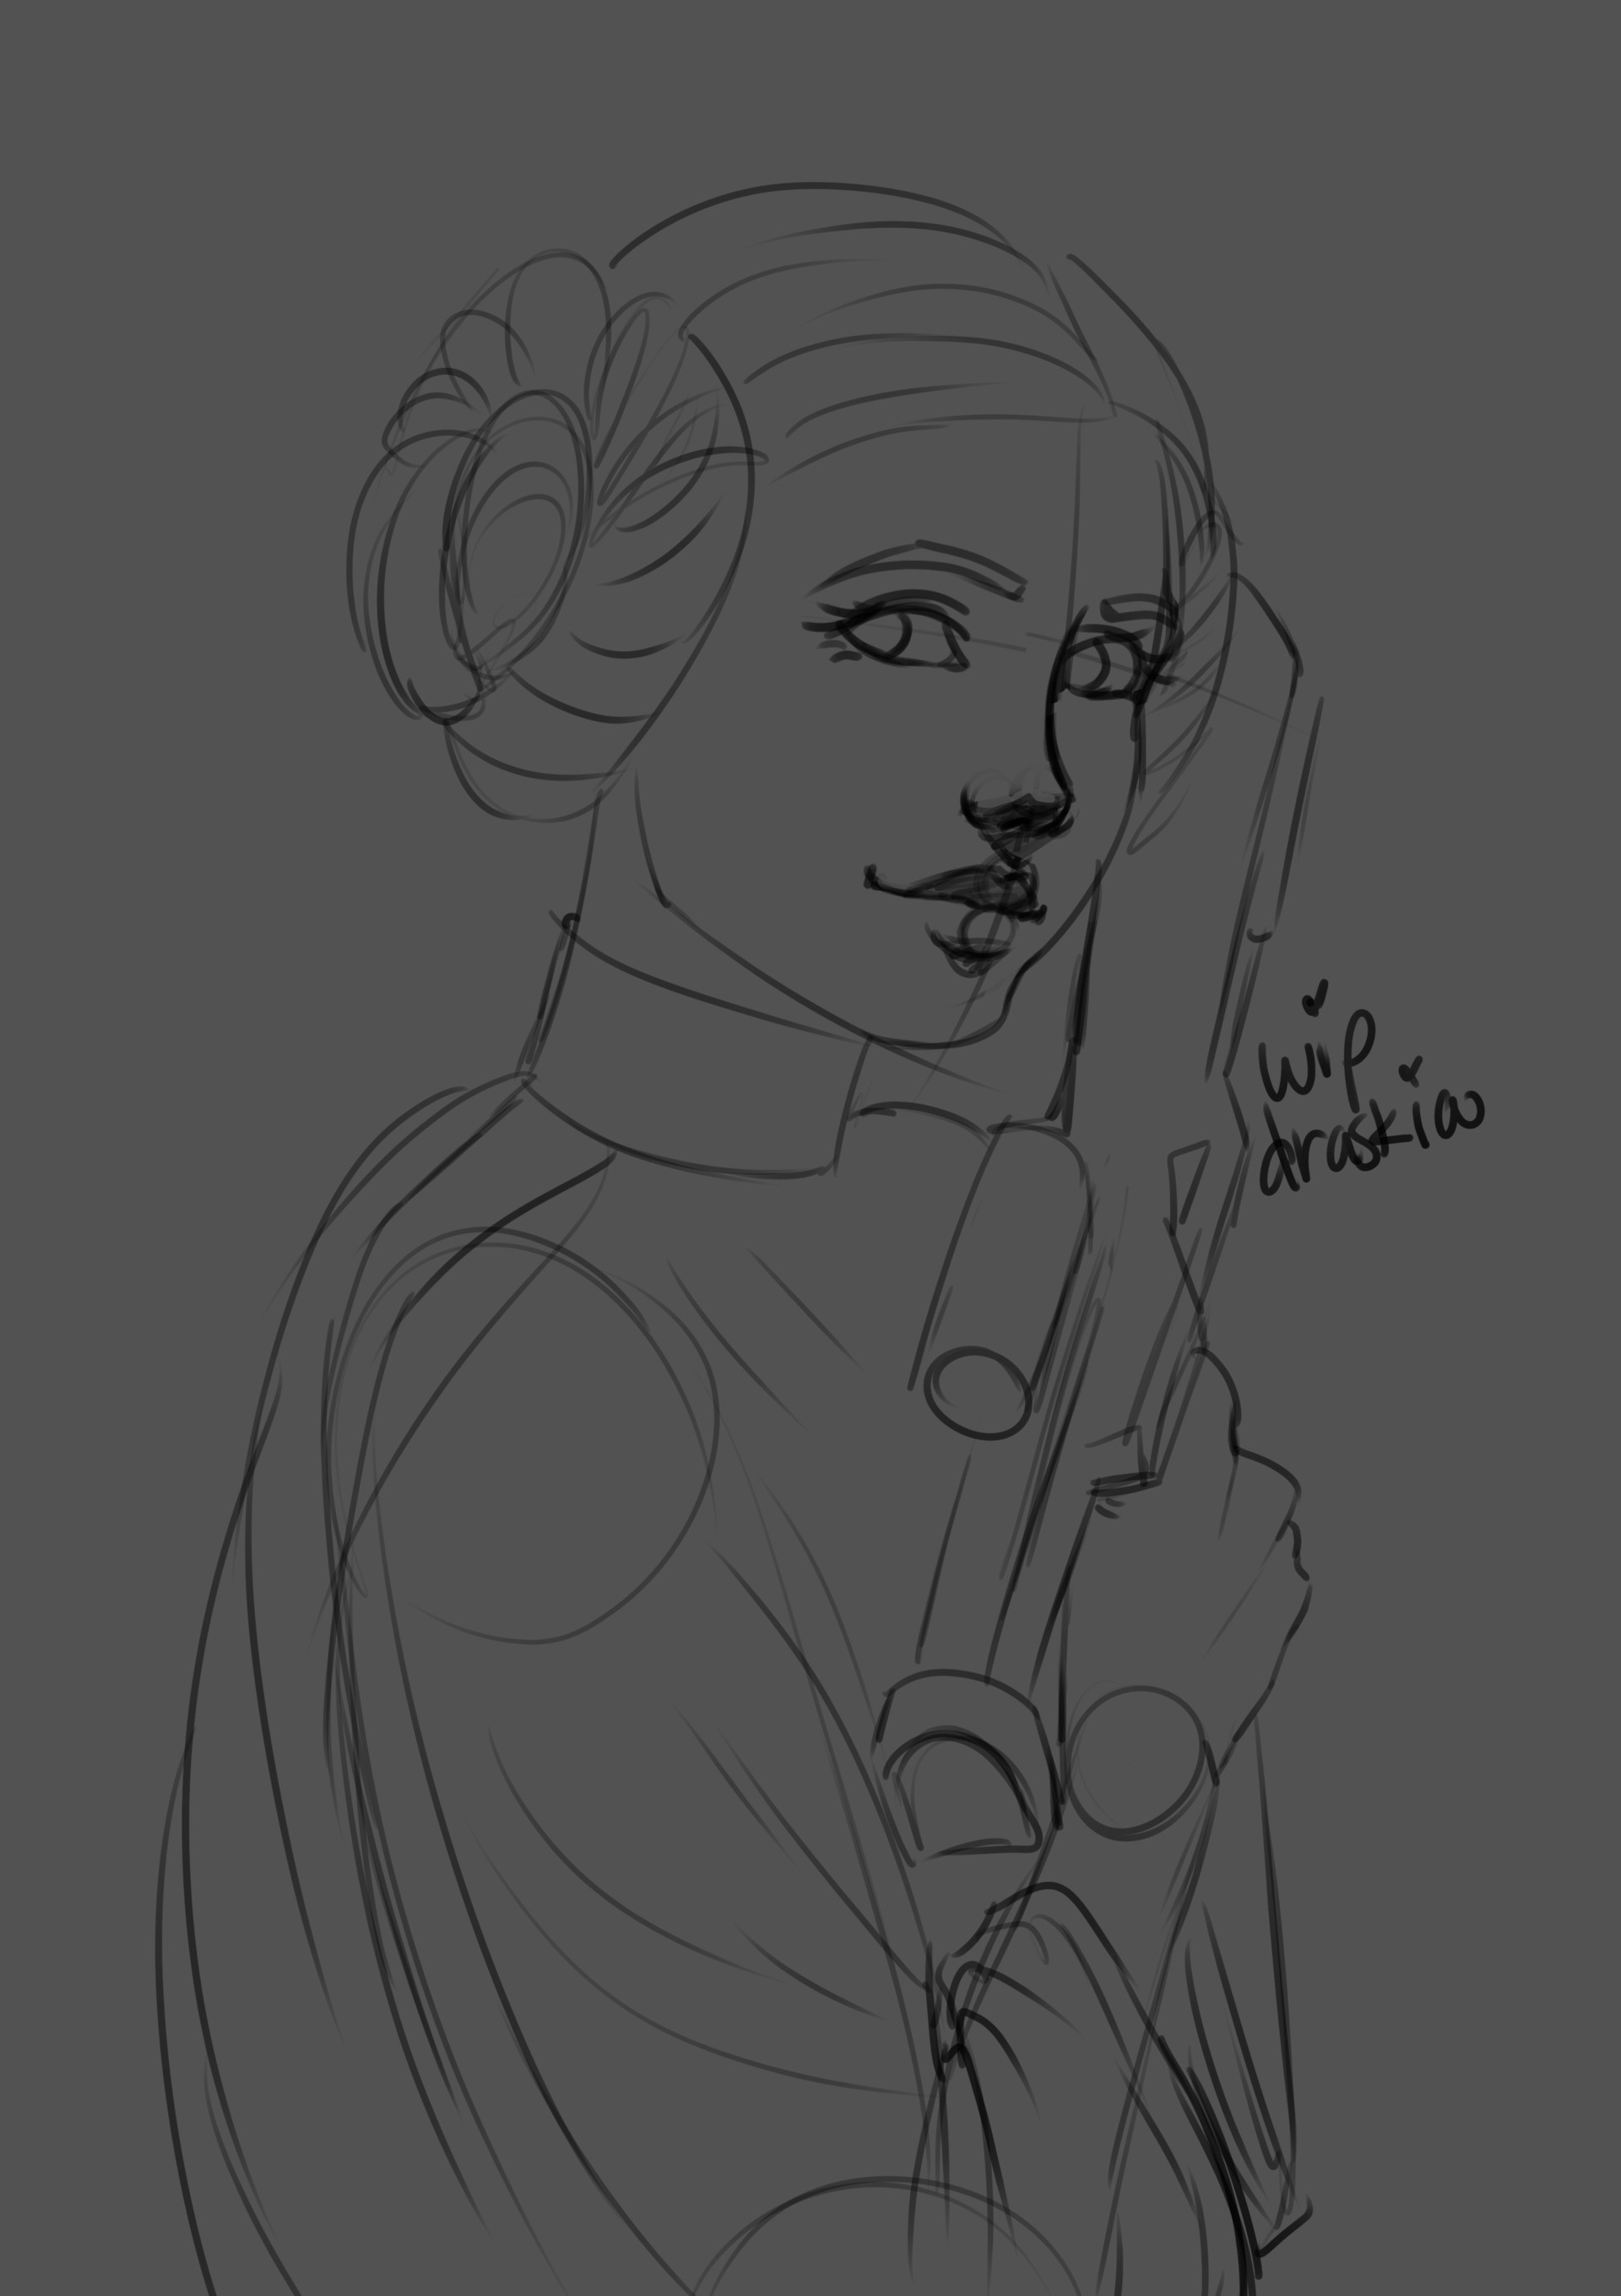 Maggie flanigan carrie fisher rough draft